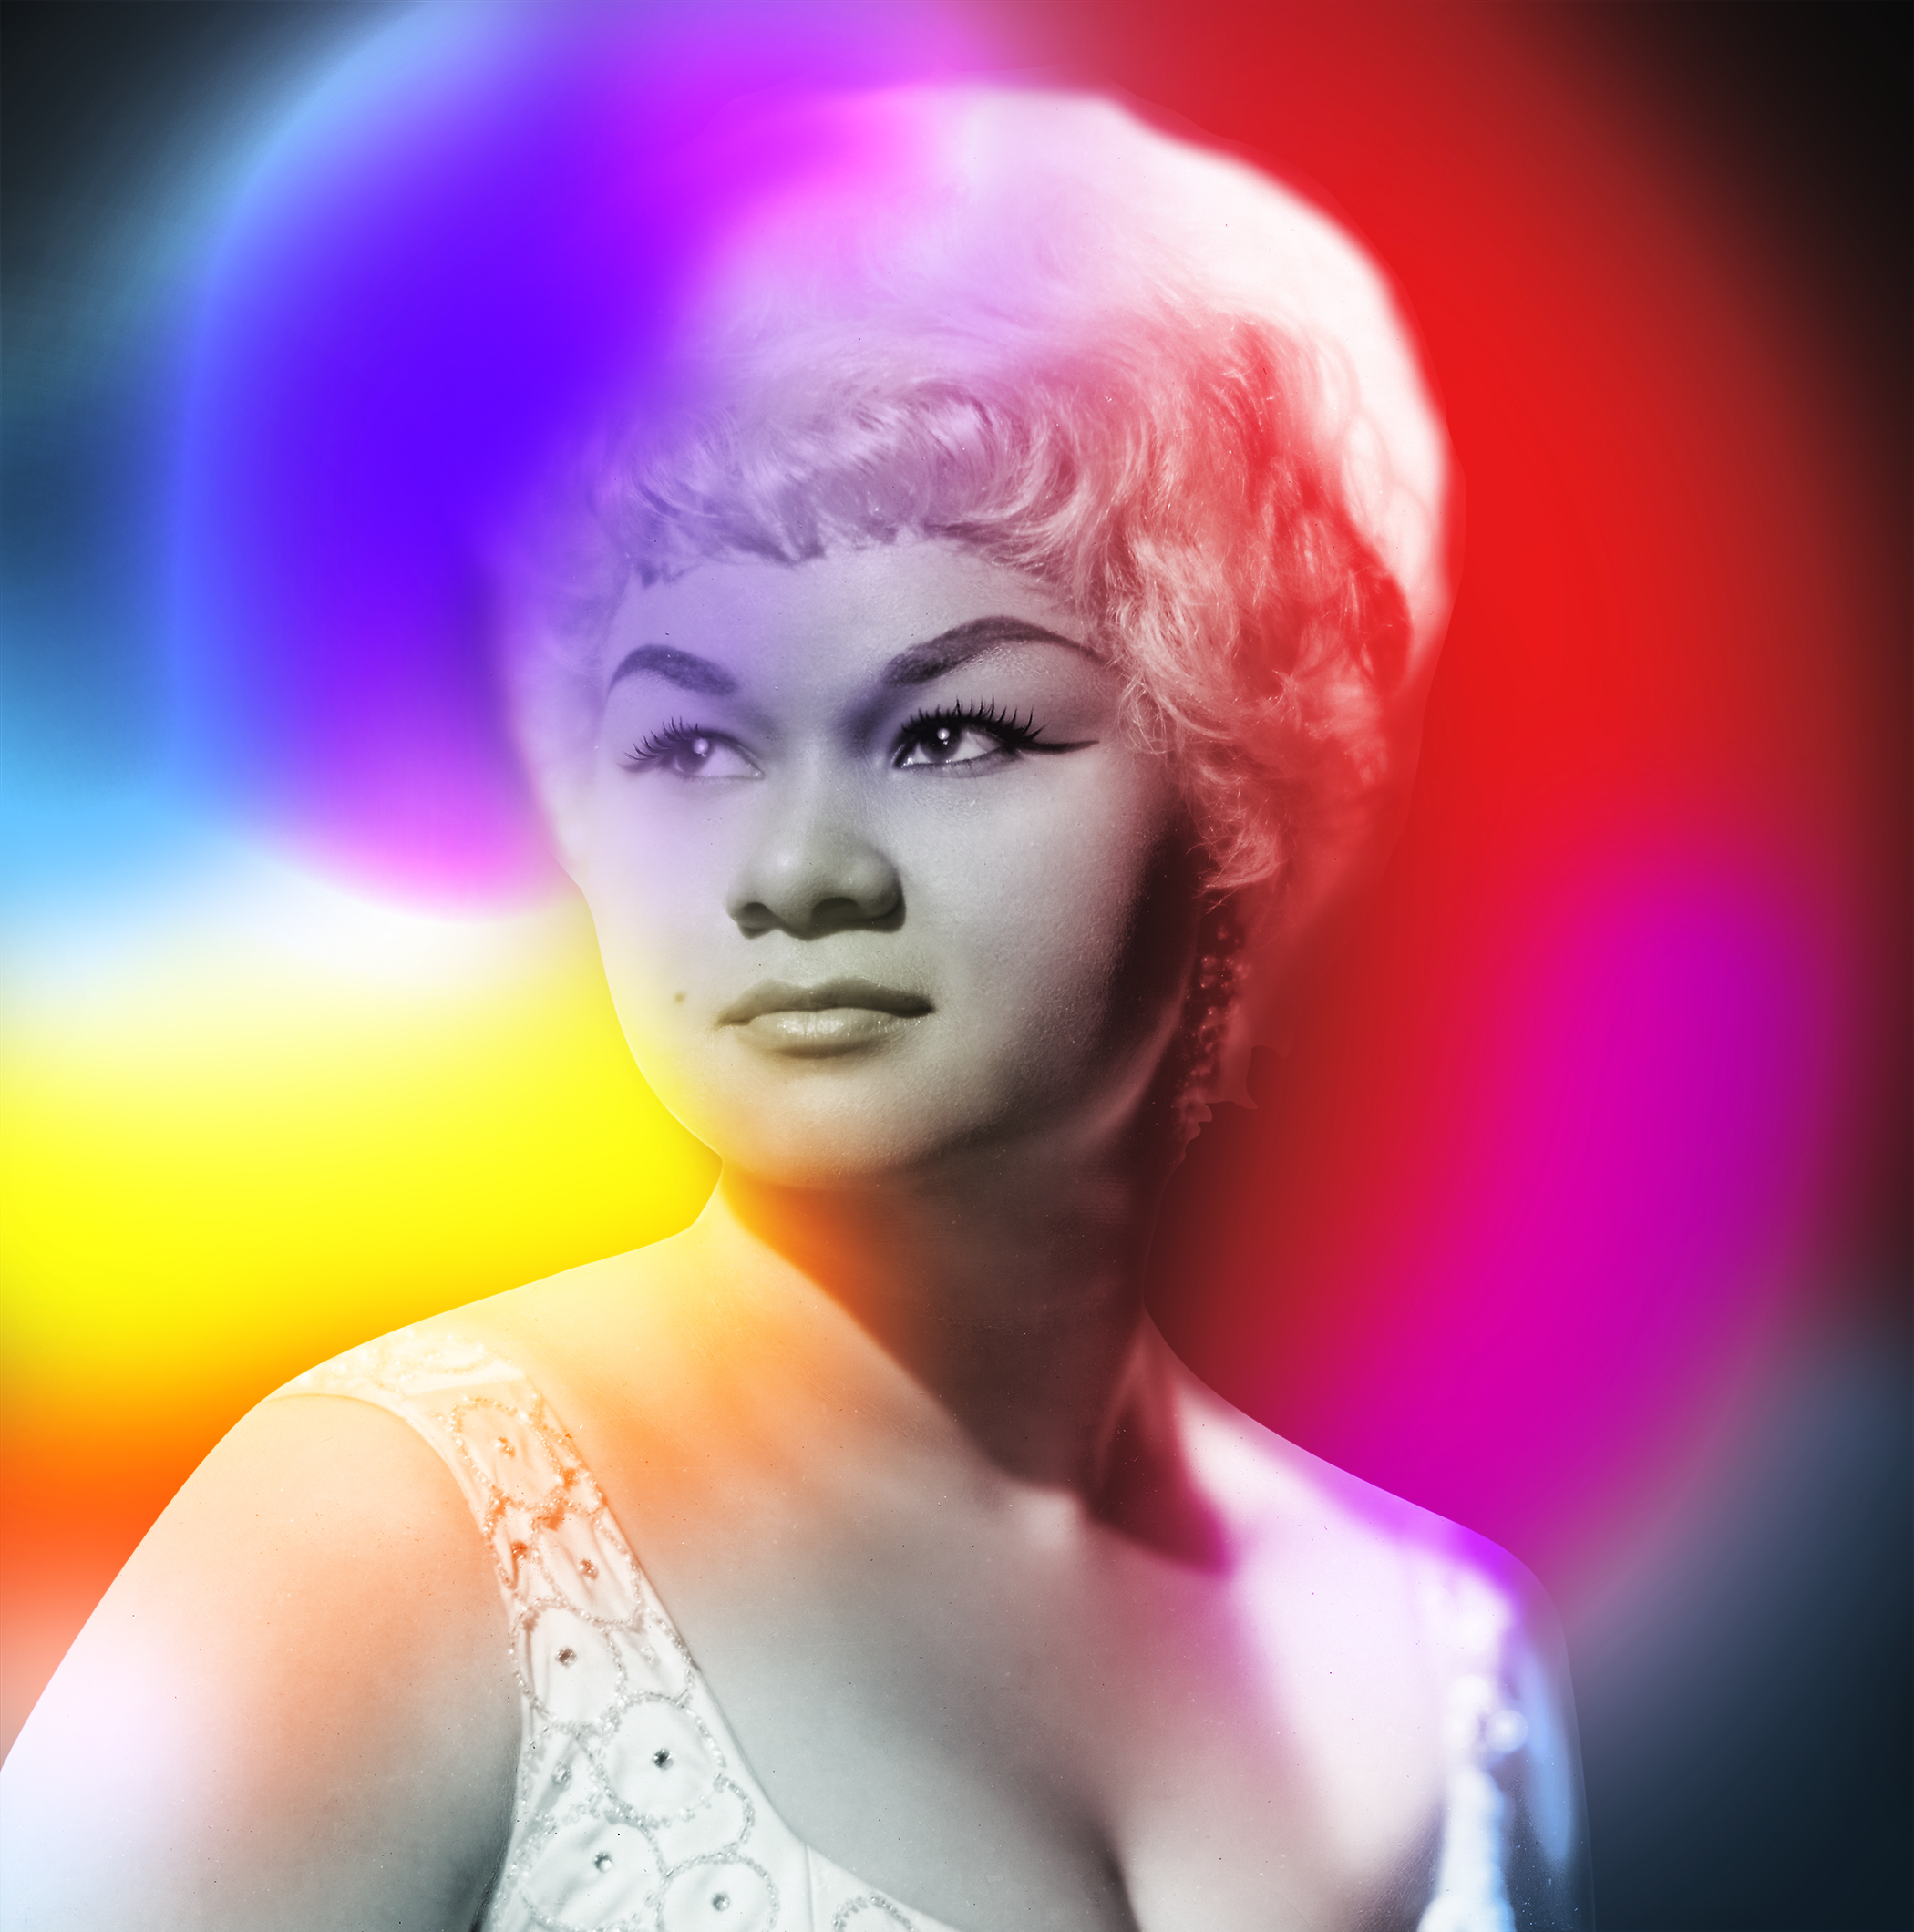 American R&B/soul singer Etta James with abstract aura photography colors